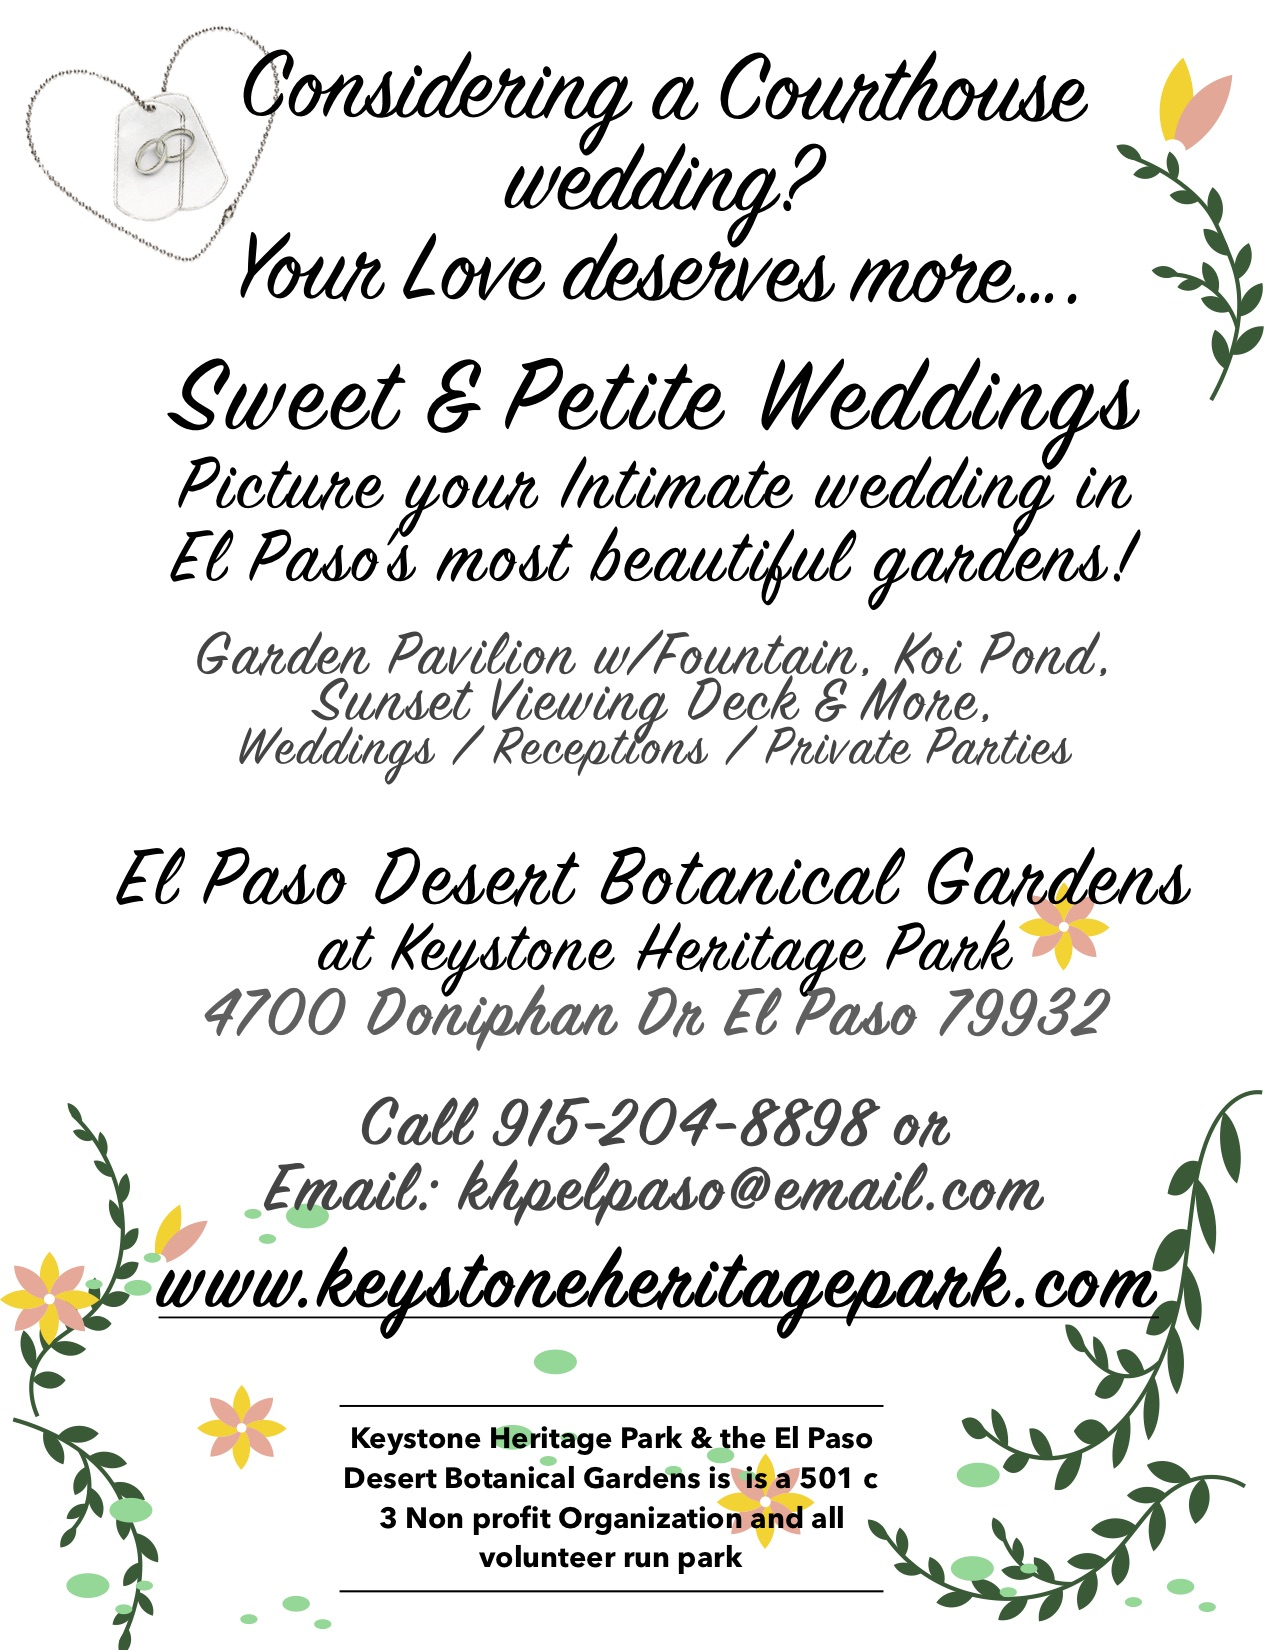 Sweet and Petite weddings Ad 2